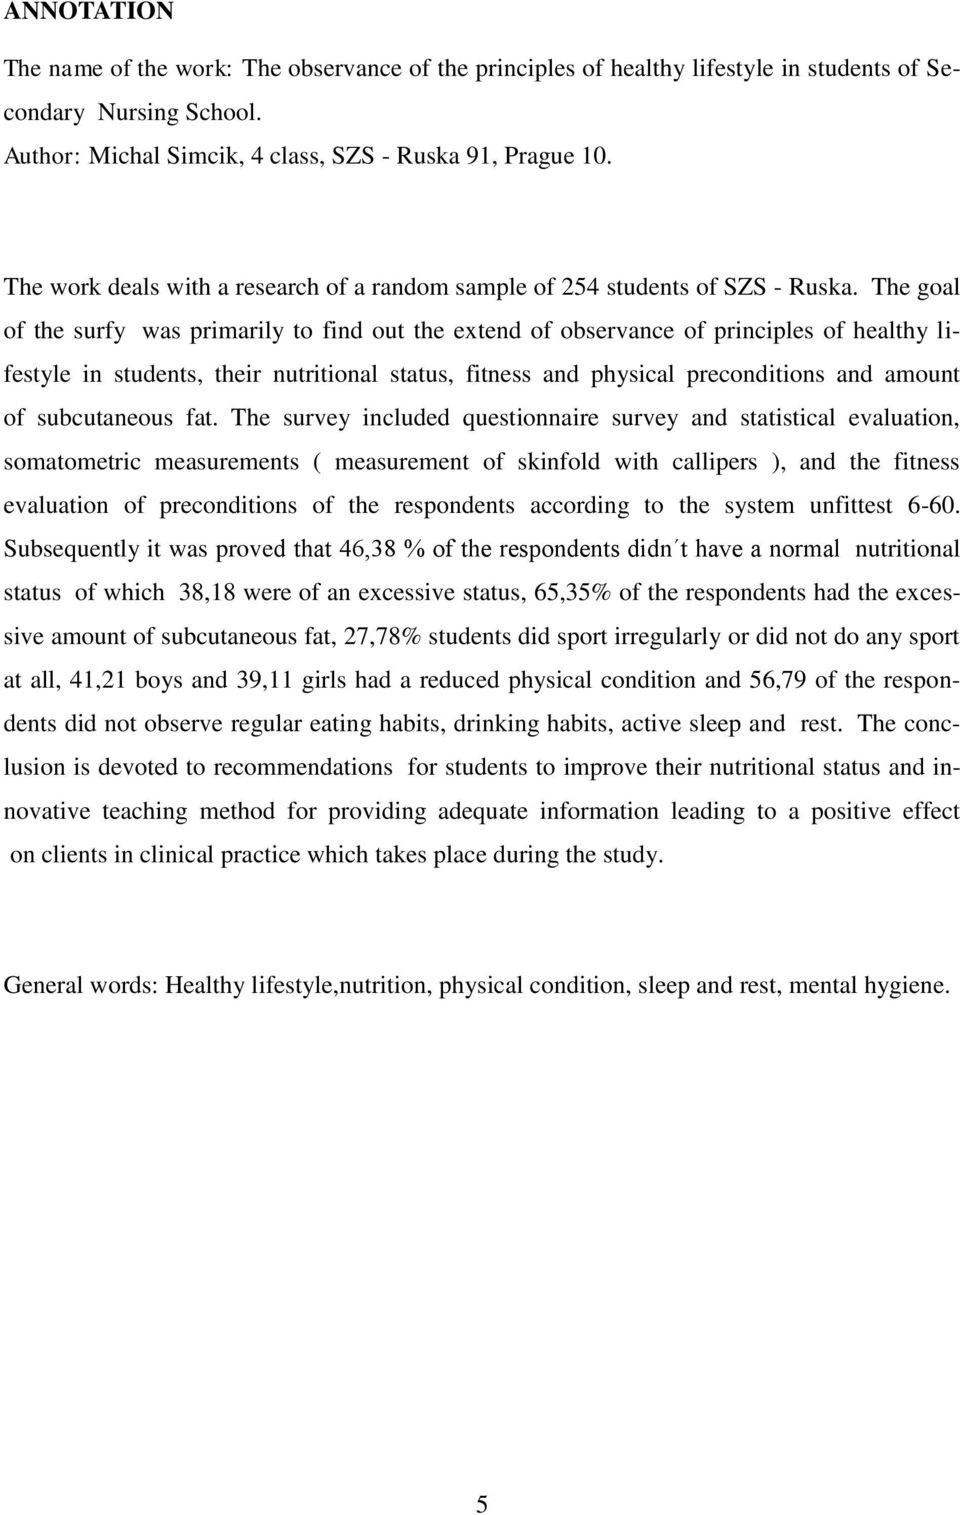 The goal of the surfy was primarily to find out the extend of observance of principles of healthy lifestyle in students, their nutritional status, fitness and physical preconditions and amount of